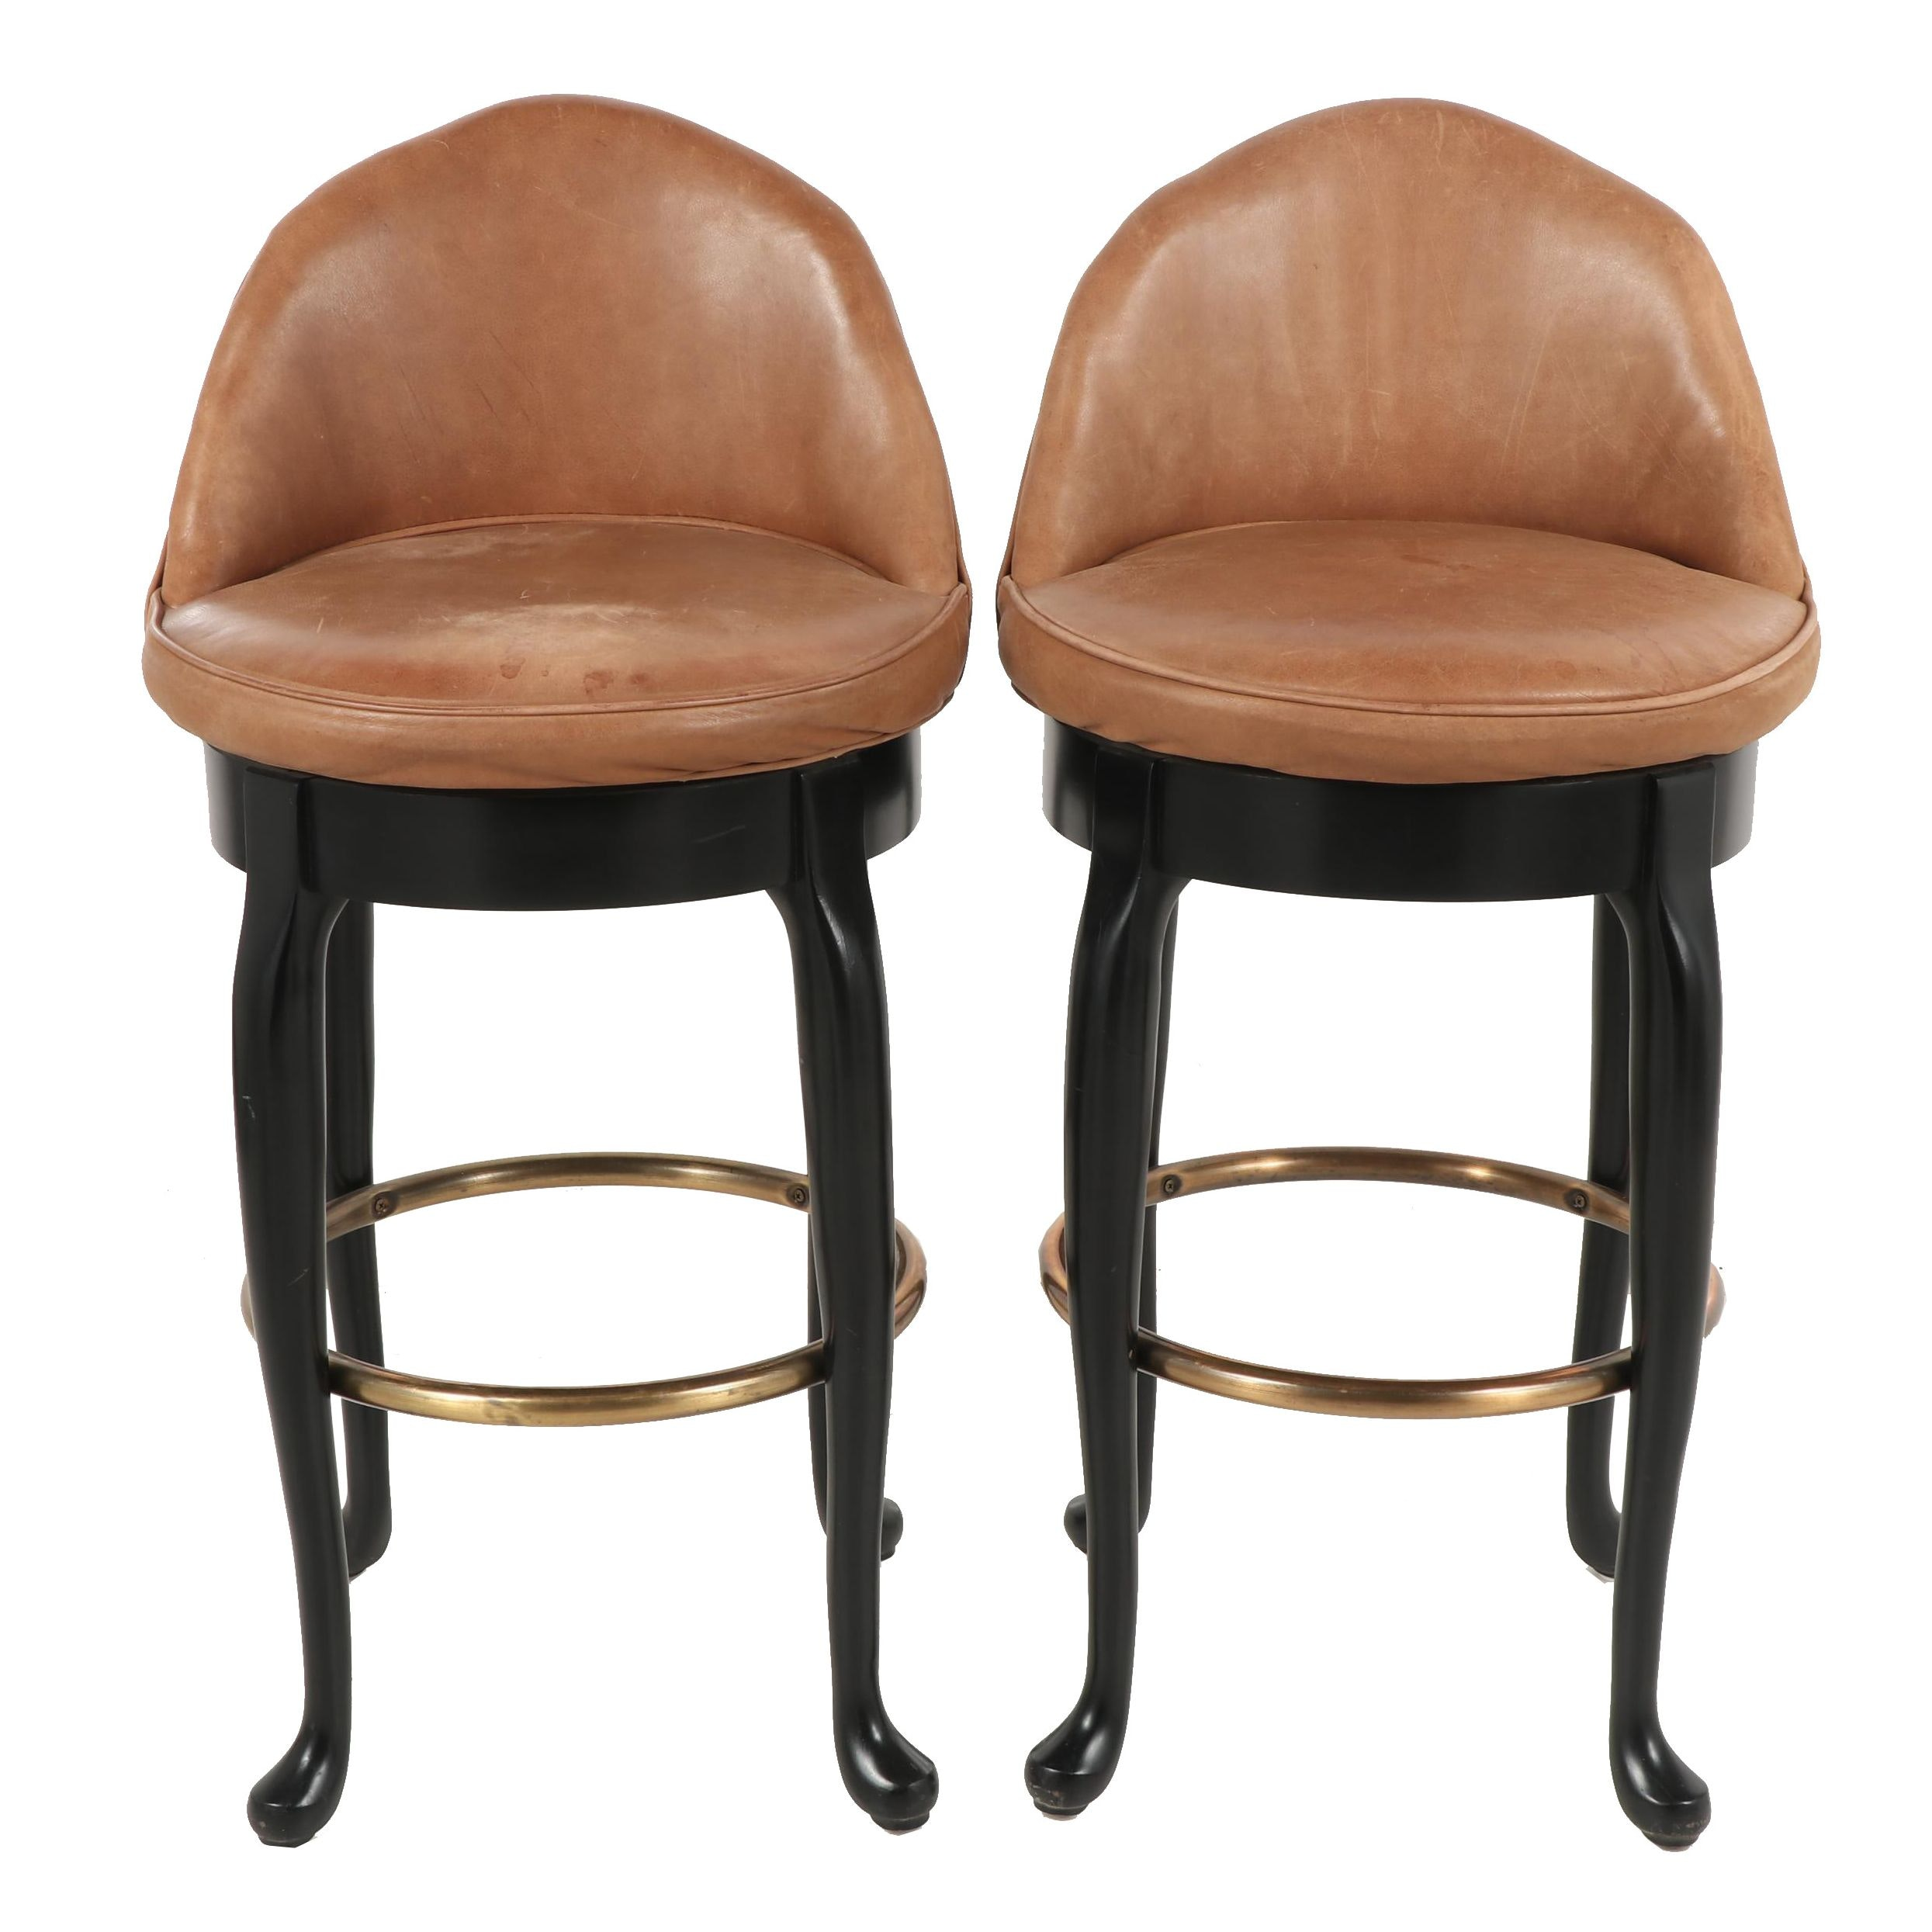 Hickory Swivel Barstools with Leather Upholstery